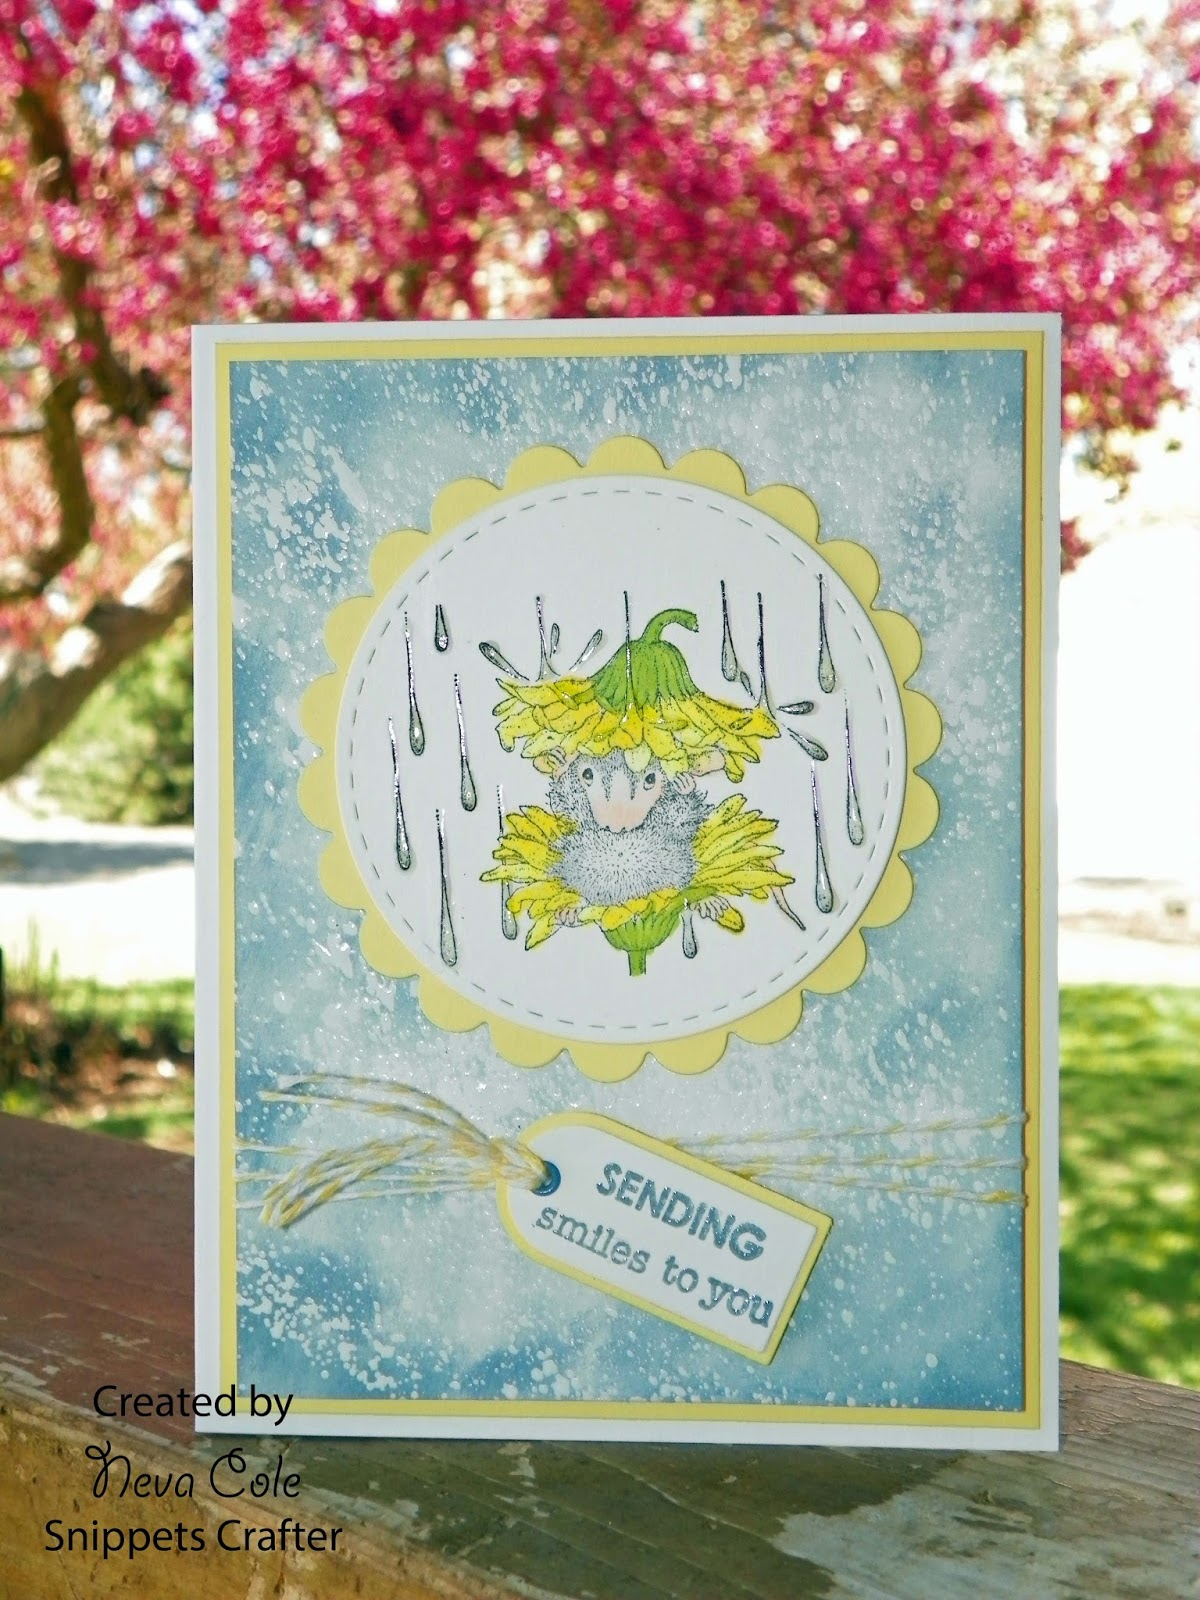 Finding snippets of time to craft april 2016 i found this lovely house mouse image that not only incorporates the april showers but also depicts the may flowers with the sweet dandelion umbrella that mightylinksfo